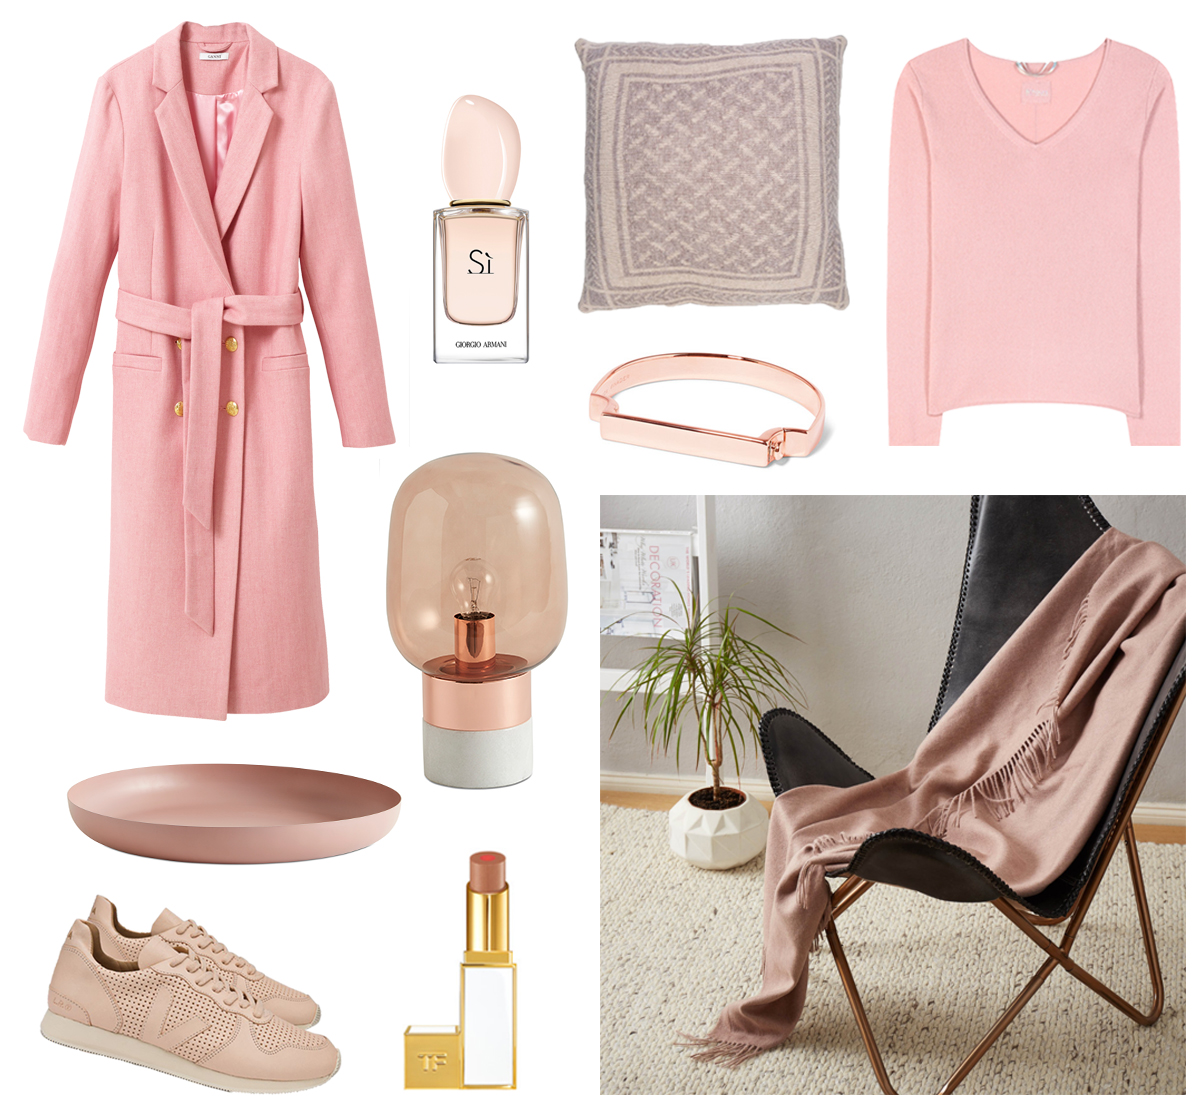 therandomnoise.com_pink_ganni-coat_81hours-sweater_veja-snakers_boconcept_tom-ford_si-georgio-armani_lala-berlin-pillow_urbanara-decke